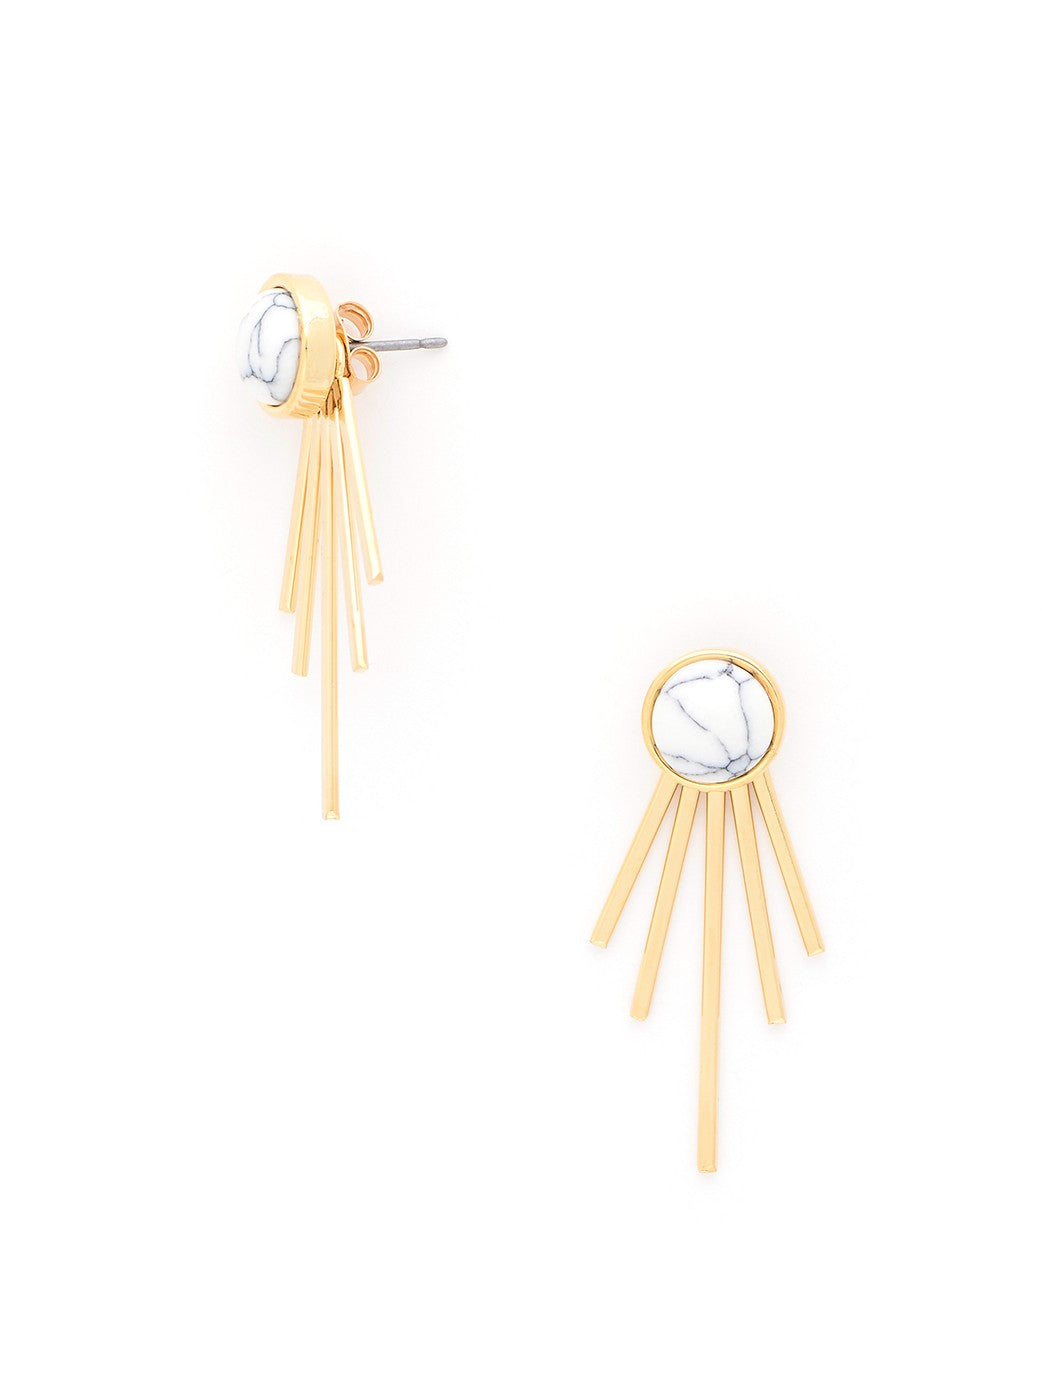 Alaia White and Gold Studded Earrings - Micha Store  - 1